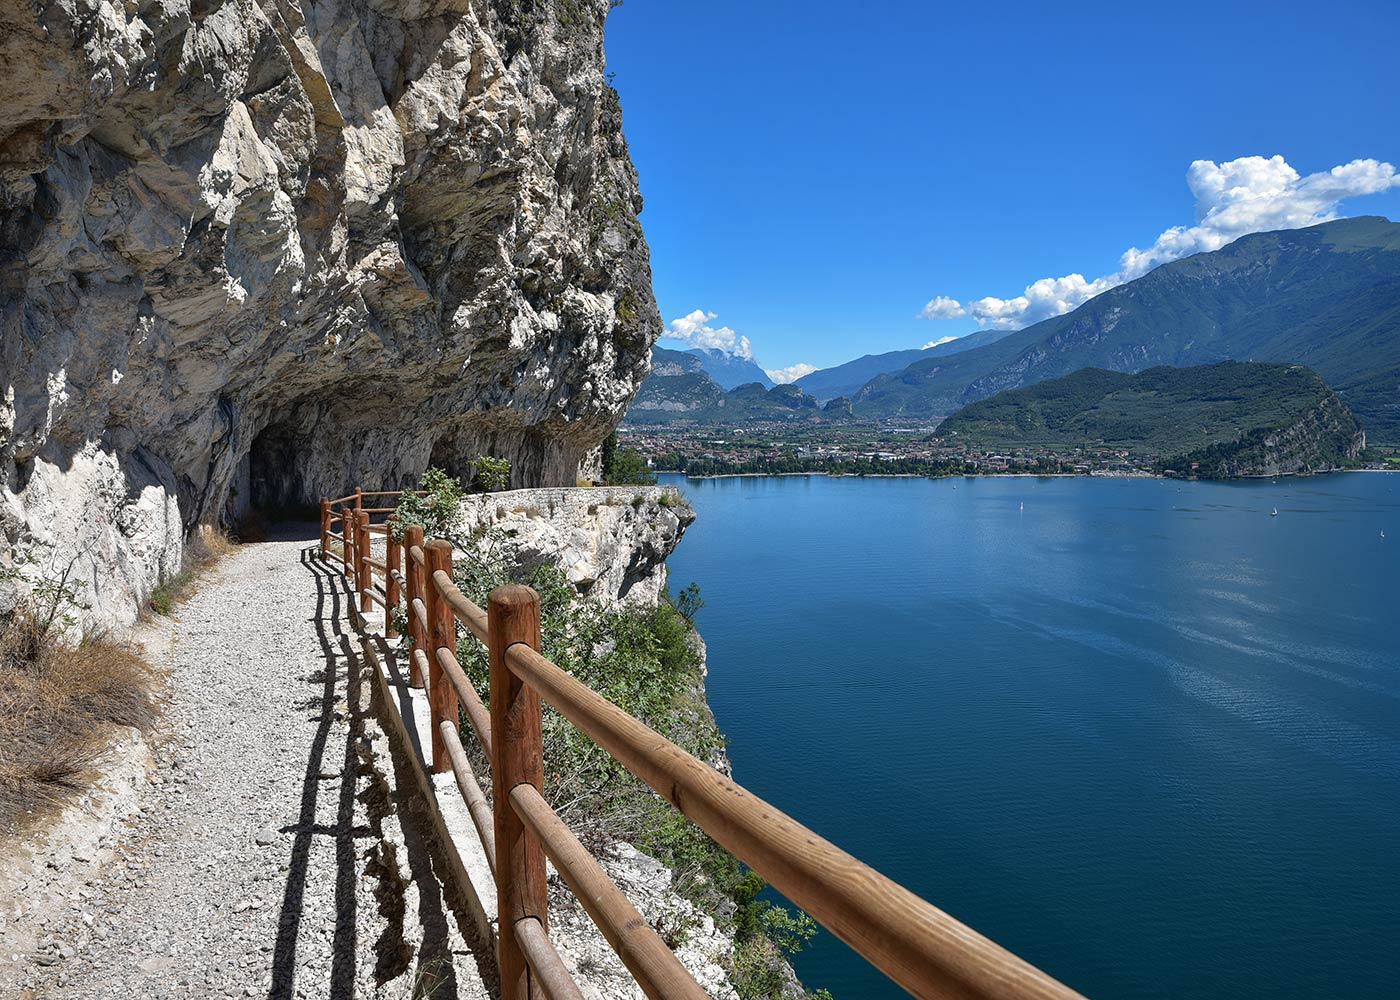 The Ponale trail in Riva del Garda: a wonderful cycling route